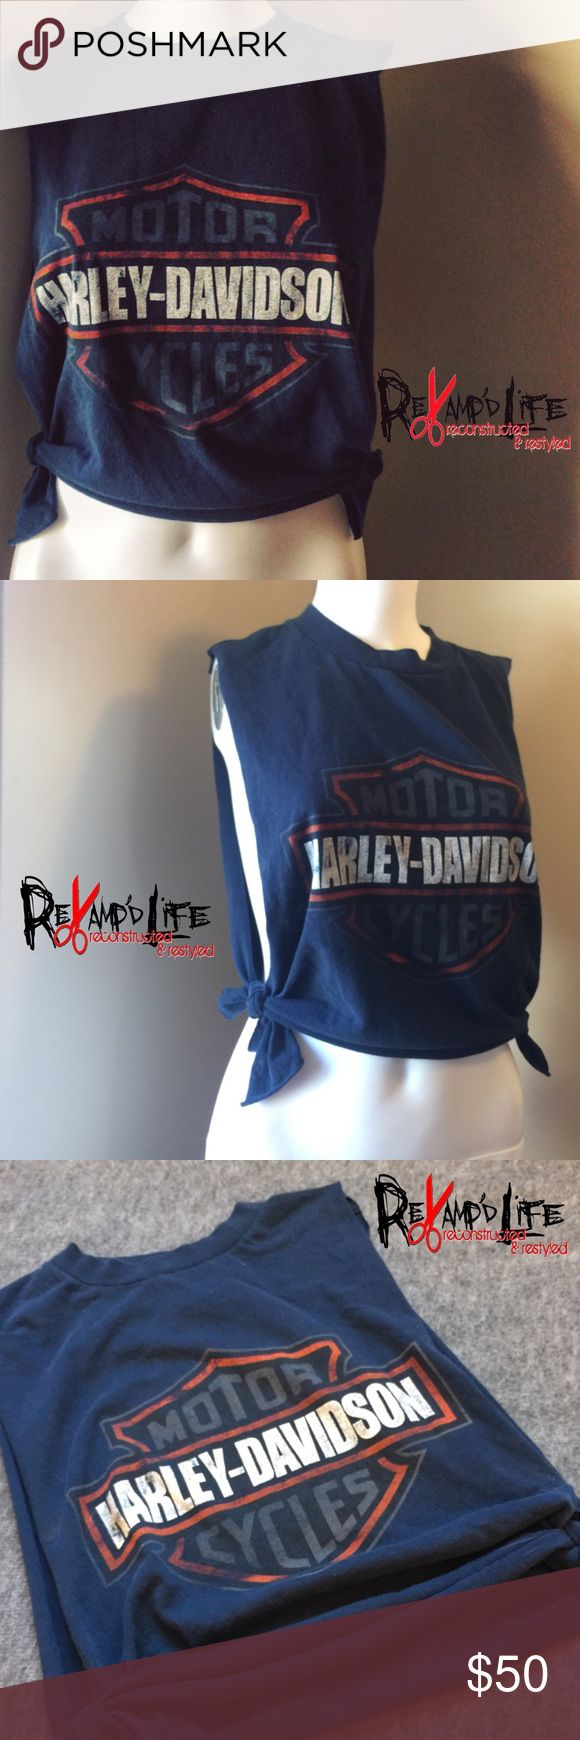 "Cut up vintage distressed Harley Davidson crop top •••☠️ BUNDLE & SAVE ☠️☠️ WILL CONSIDER *ALL* REASONABLE OFFERS!  Vintage Harley Davidson crop top • this cut up crop top is ""vintage"" ..distressed and faded. Somewhat heavyweight, comfortable. A real dark"